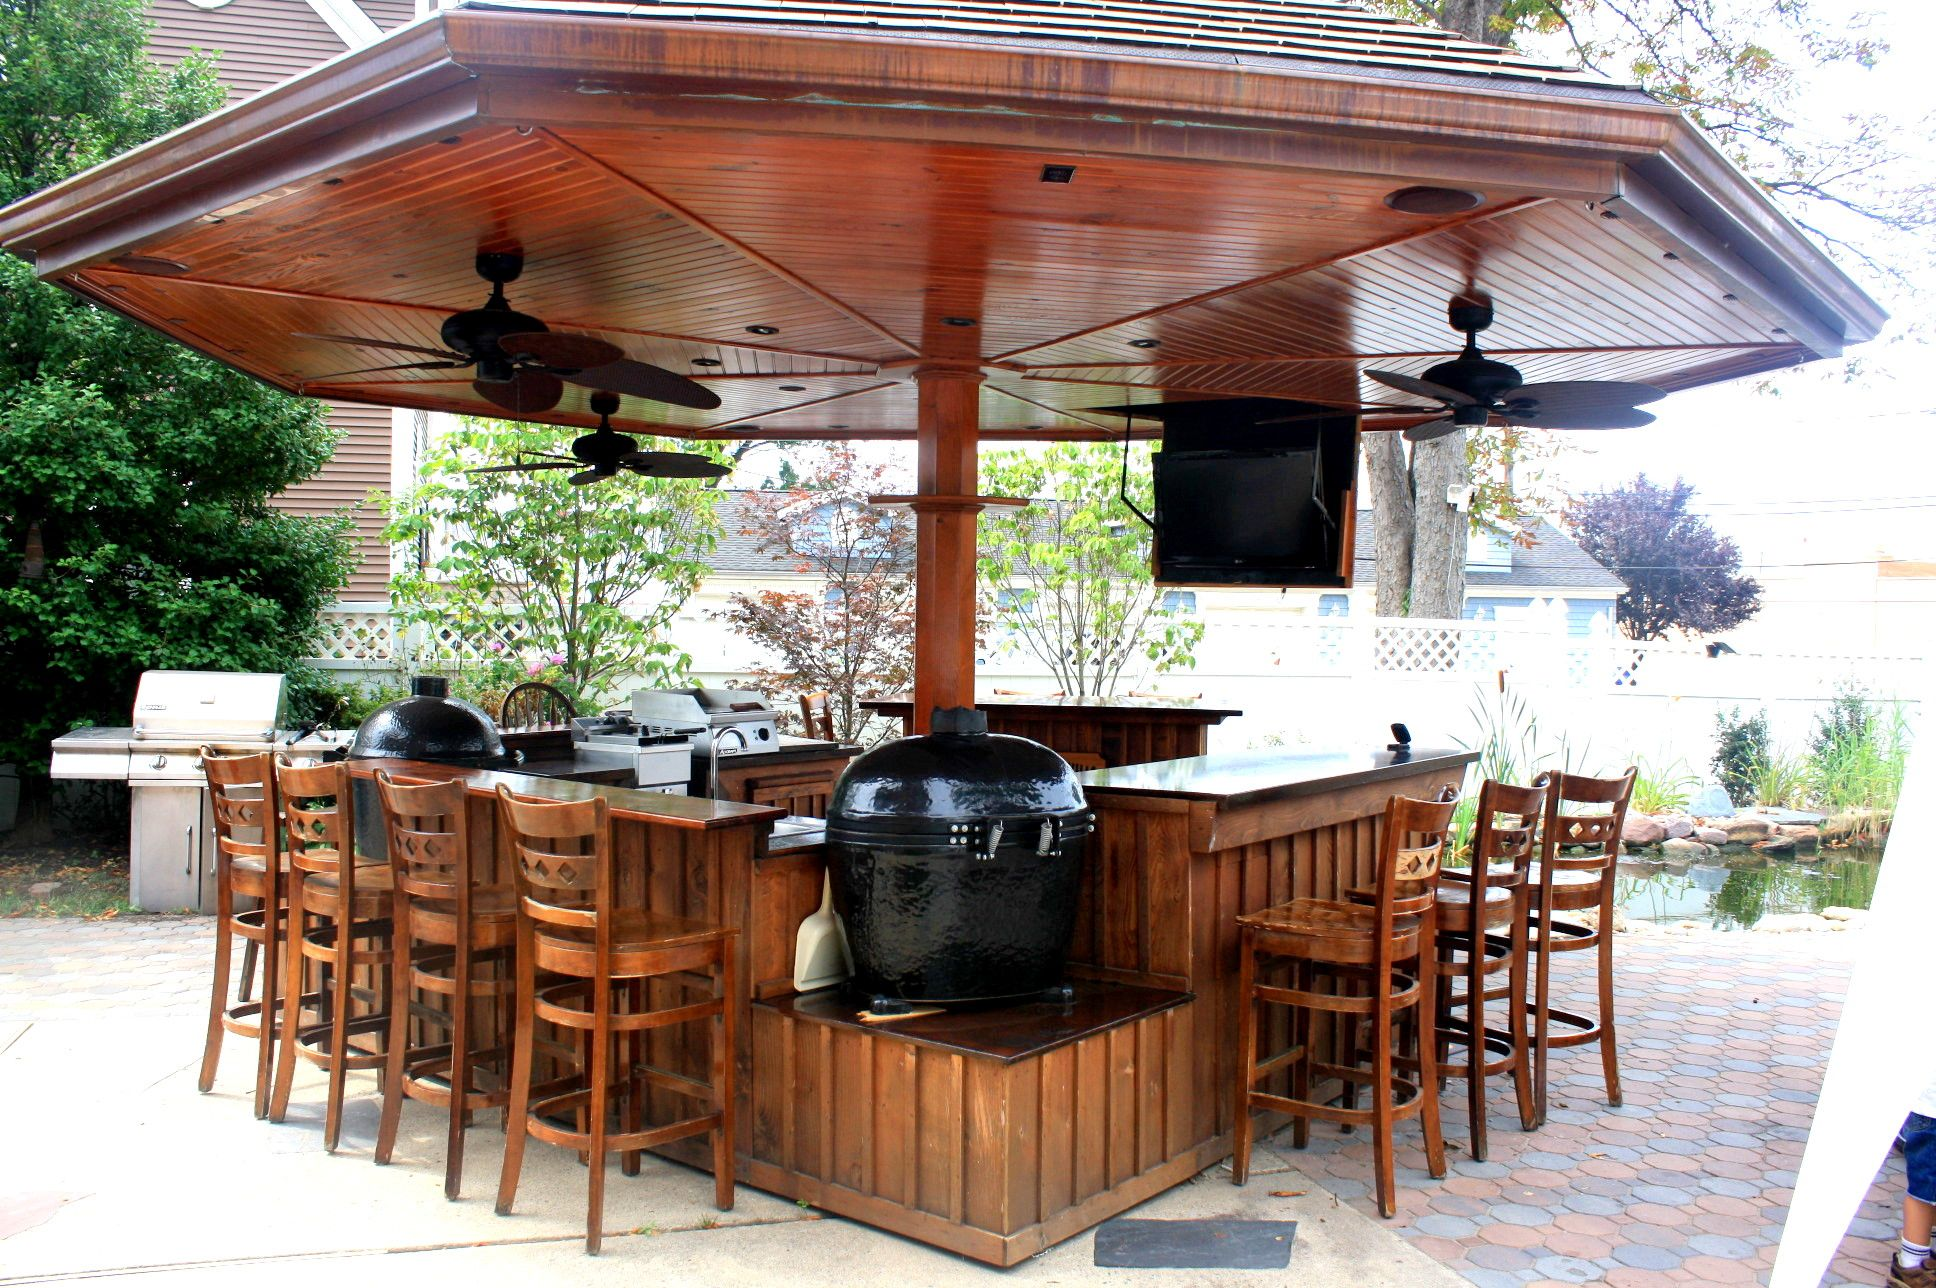 Outdoor Kitchen We Built For The Big Green Egg Or Kamado